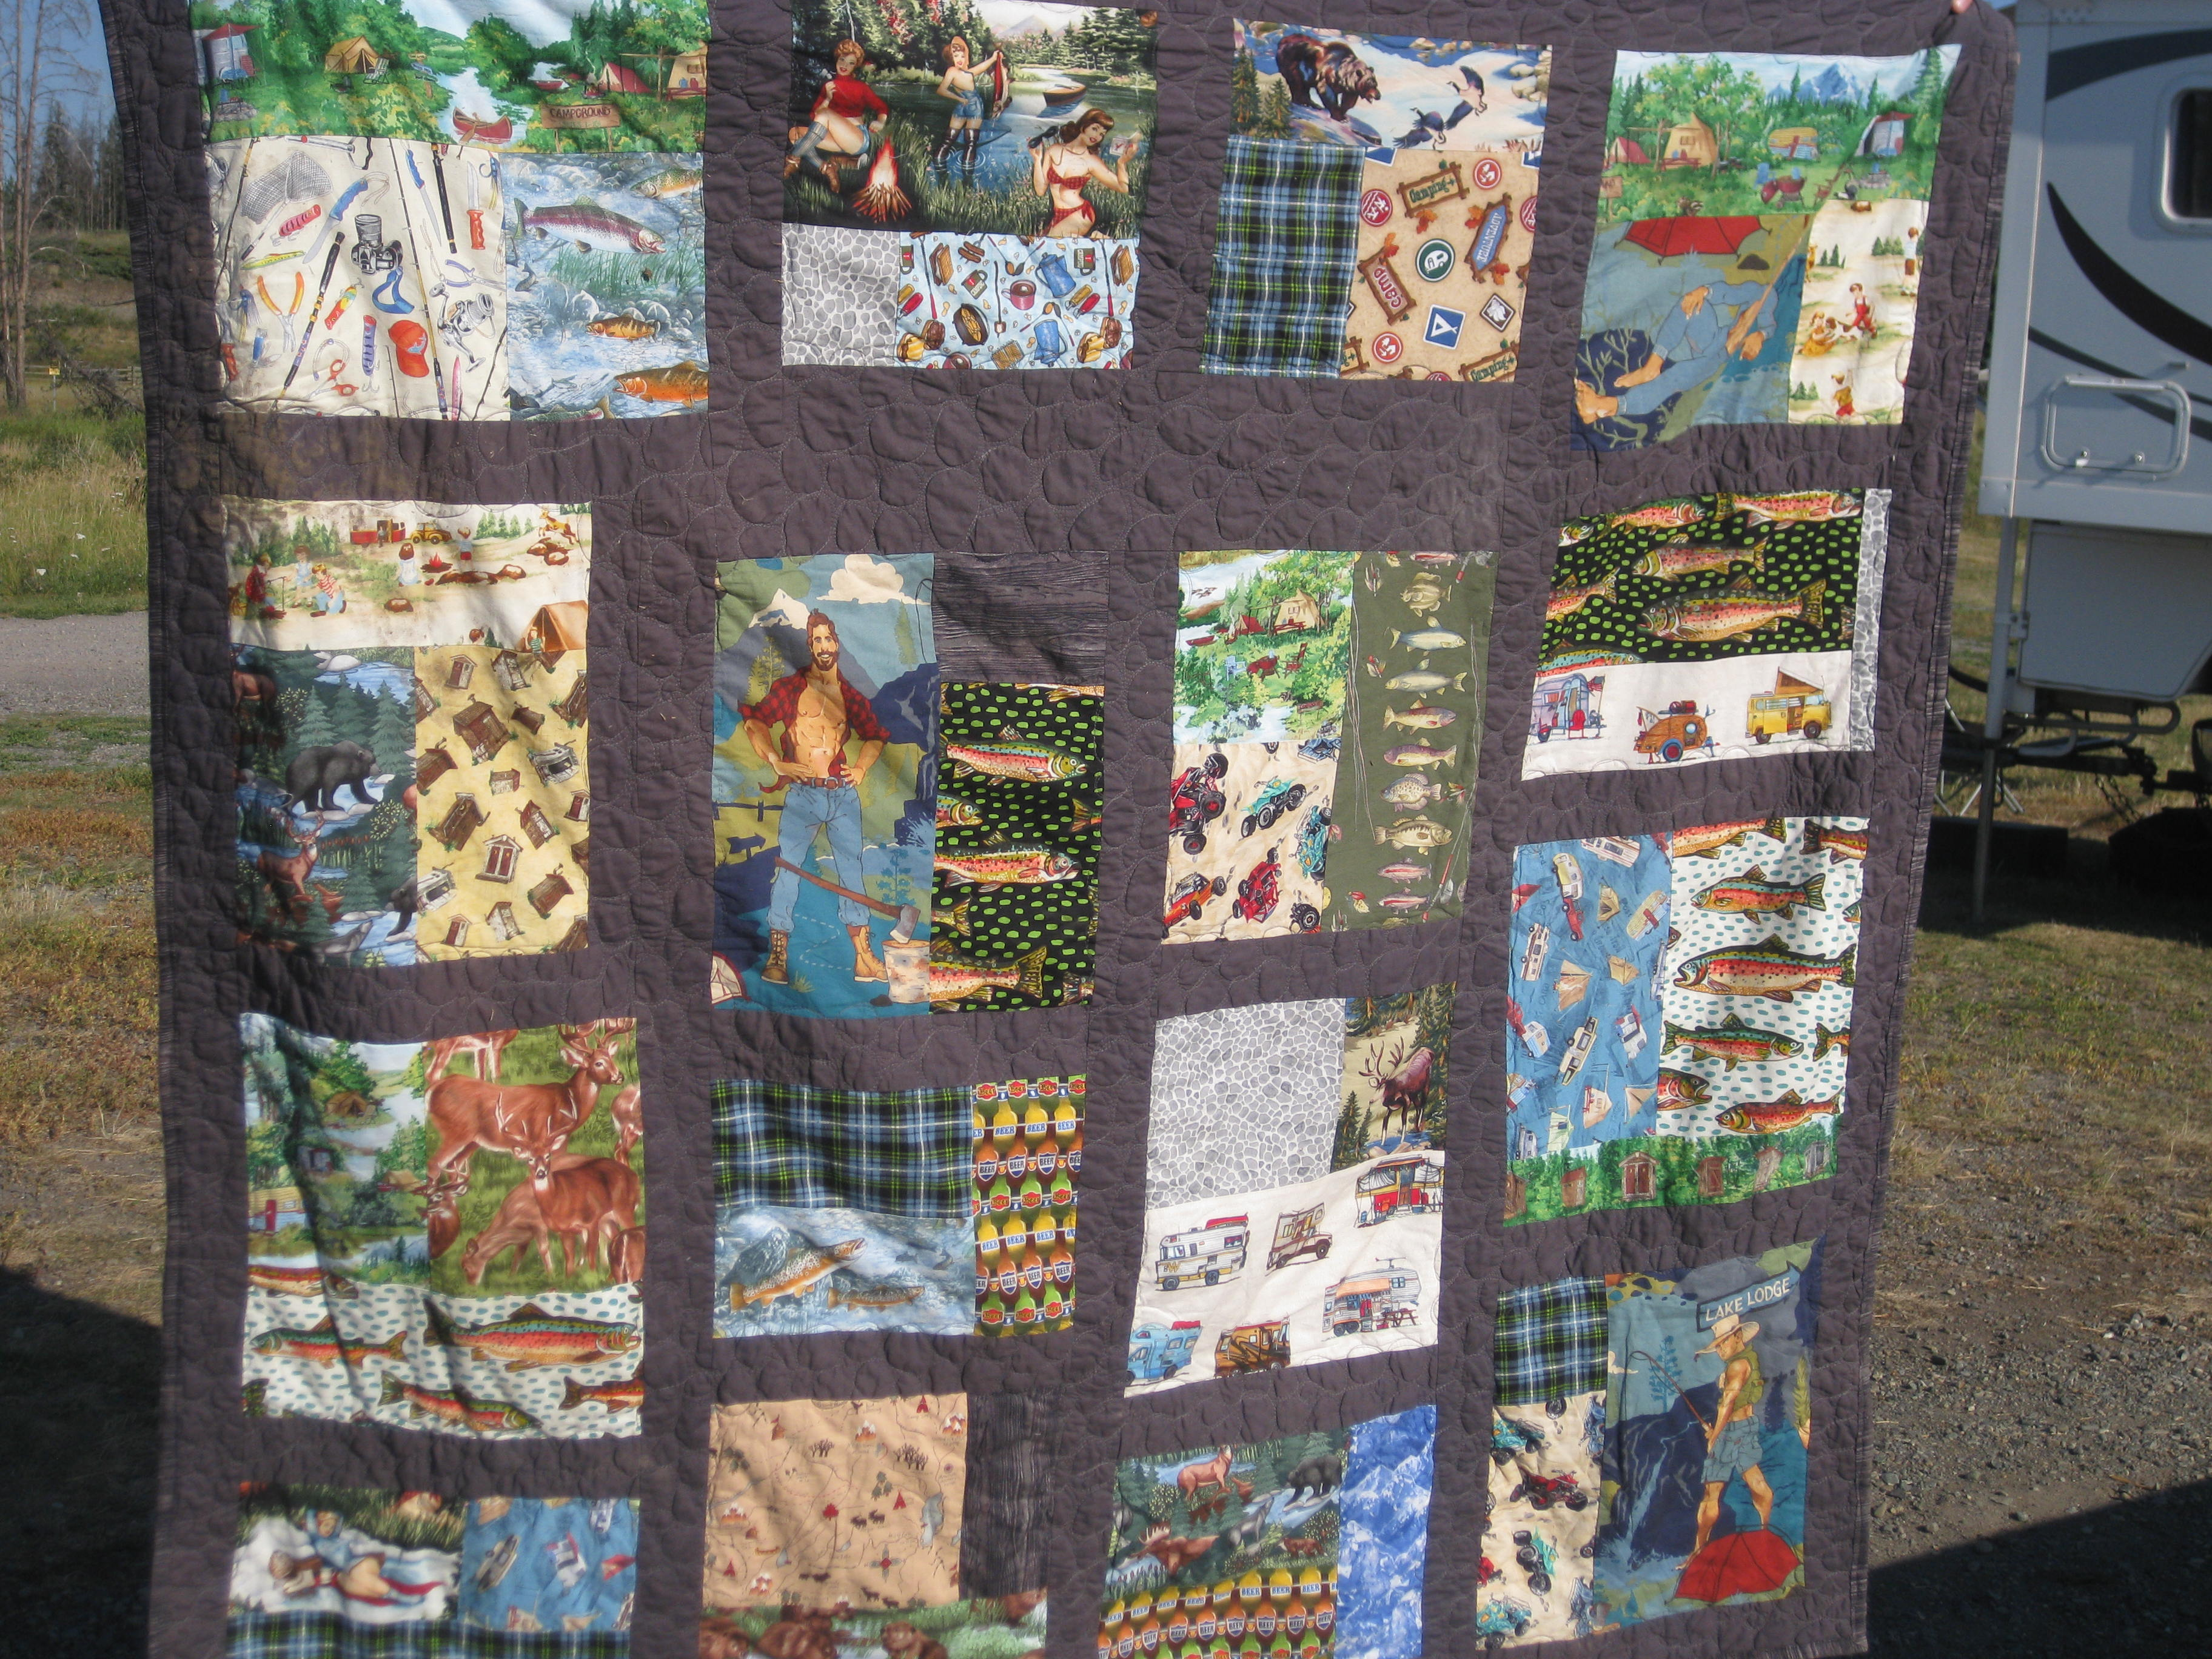 Cute Camping Quilt! - Making Things is Awesome : camping quilt - Adamdwight.com